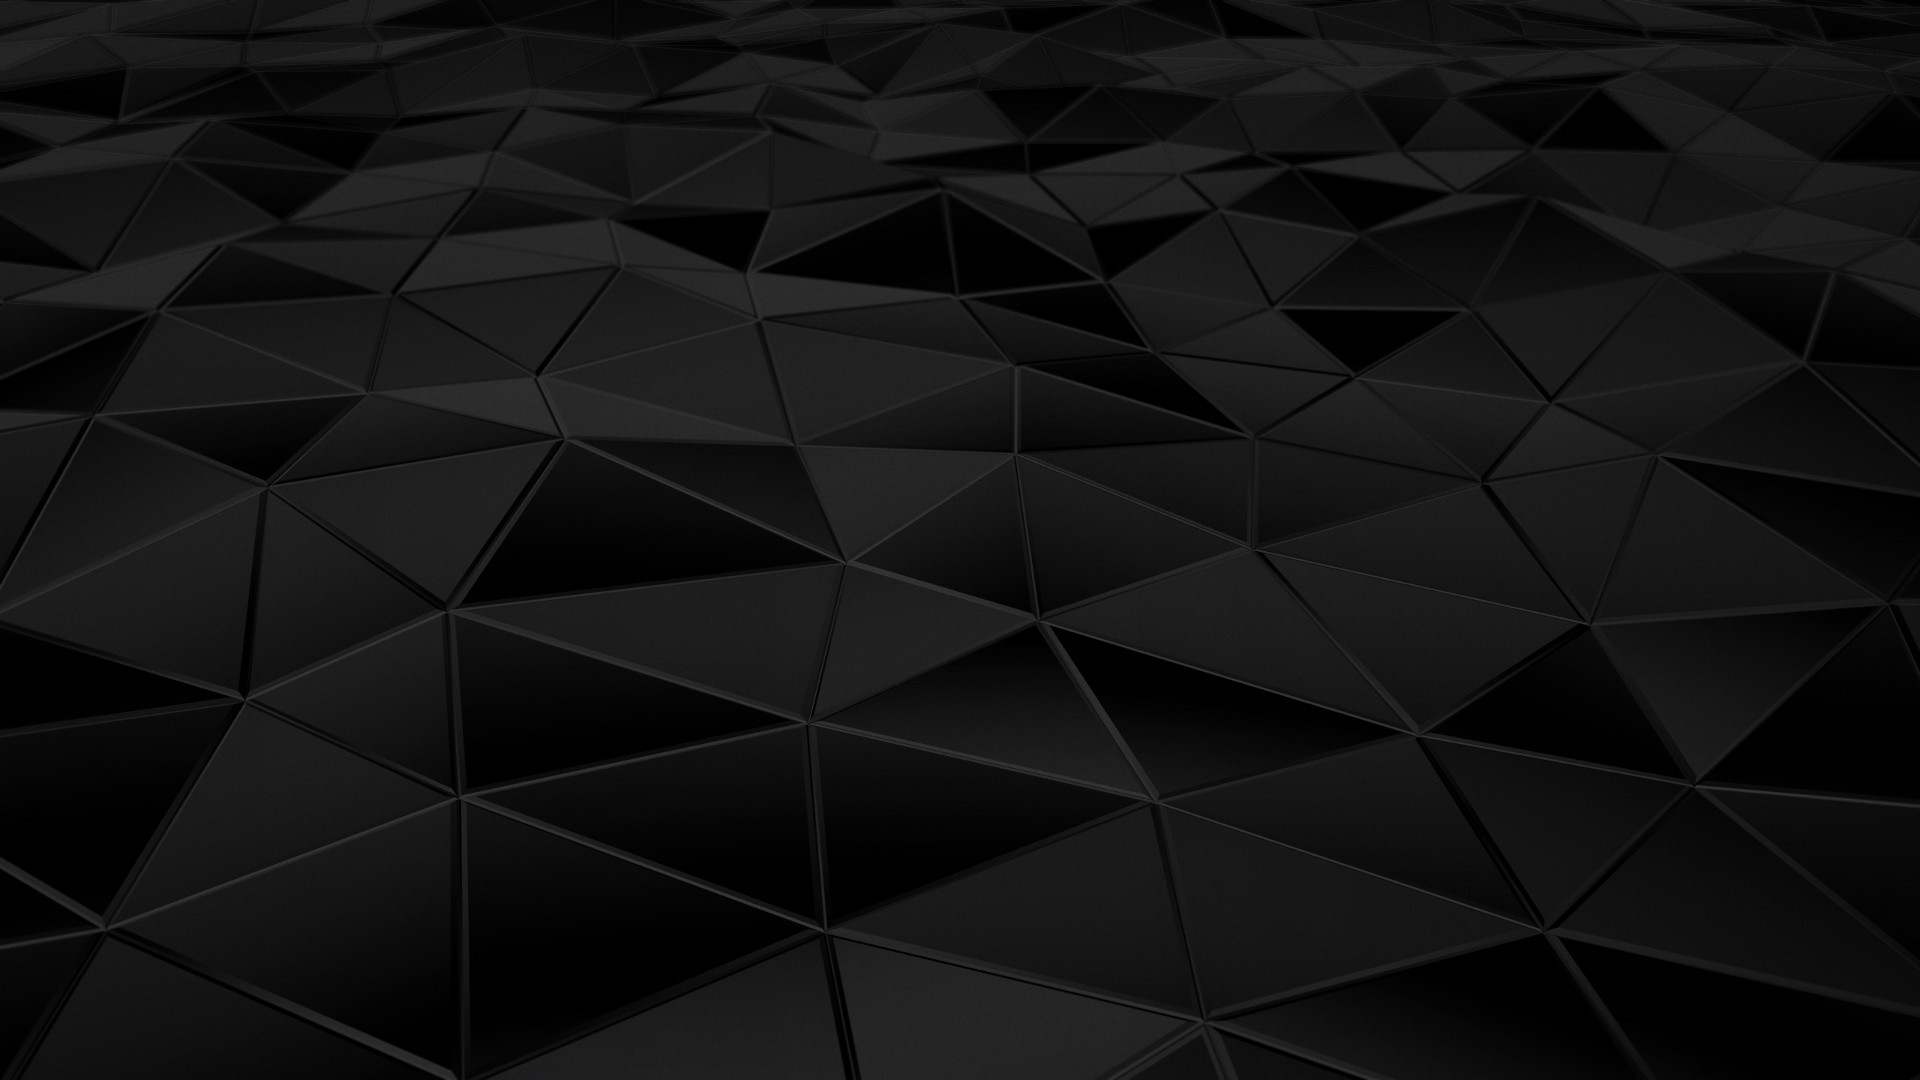 Black Abstract jpg picture